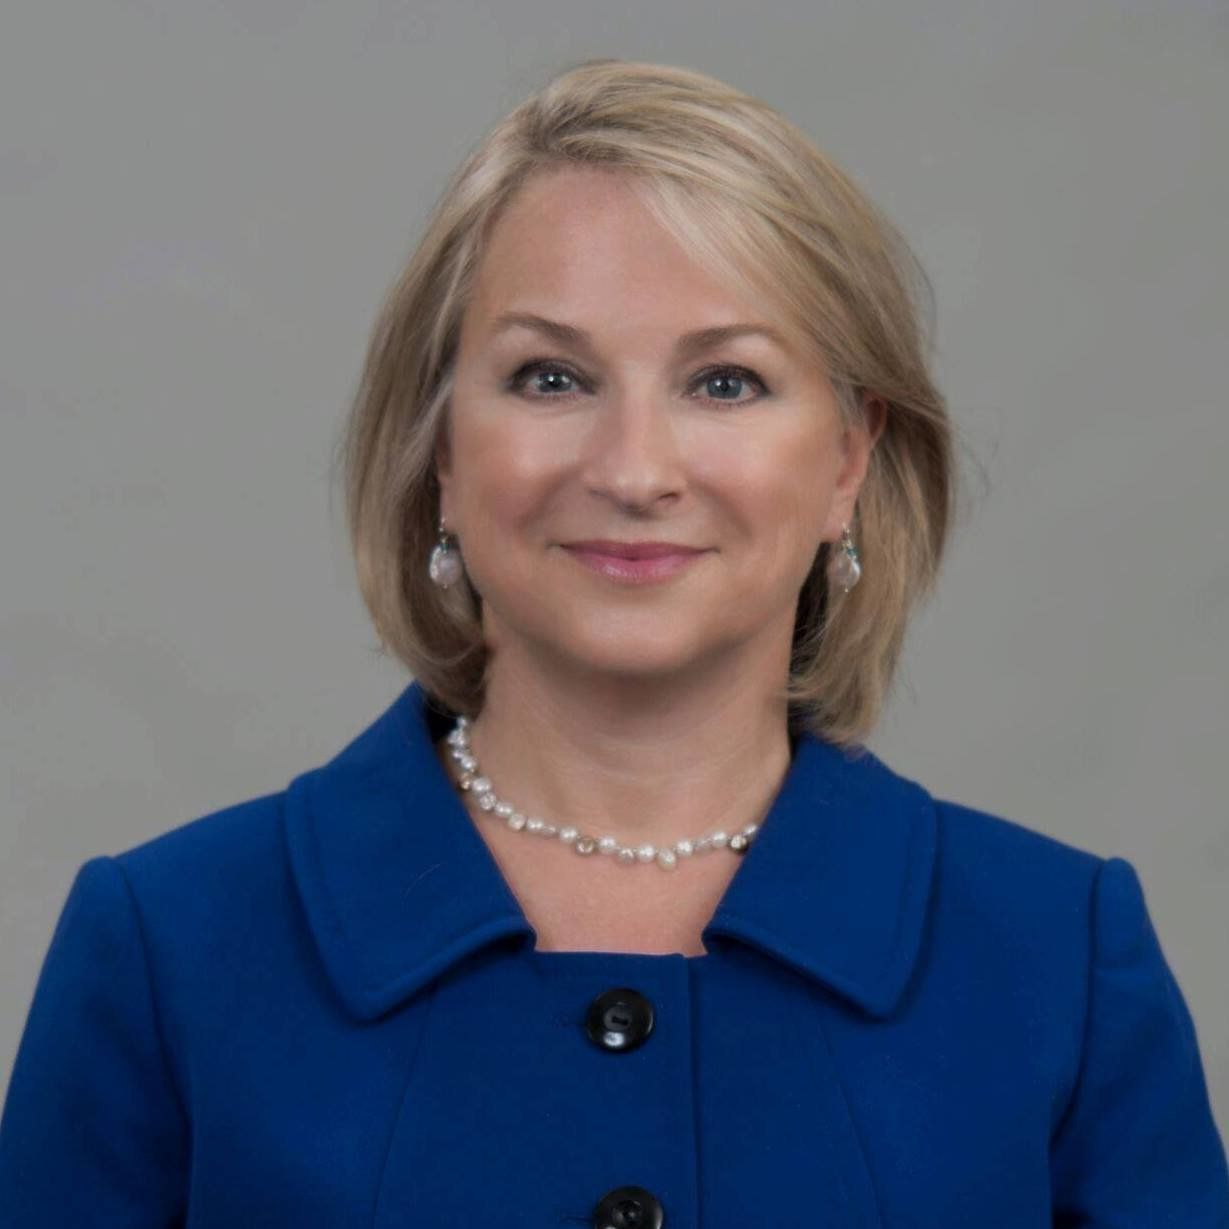 Susan Wild won the Democratic nomination for Pennsylvanias 7th Congressional District